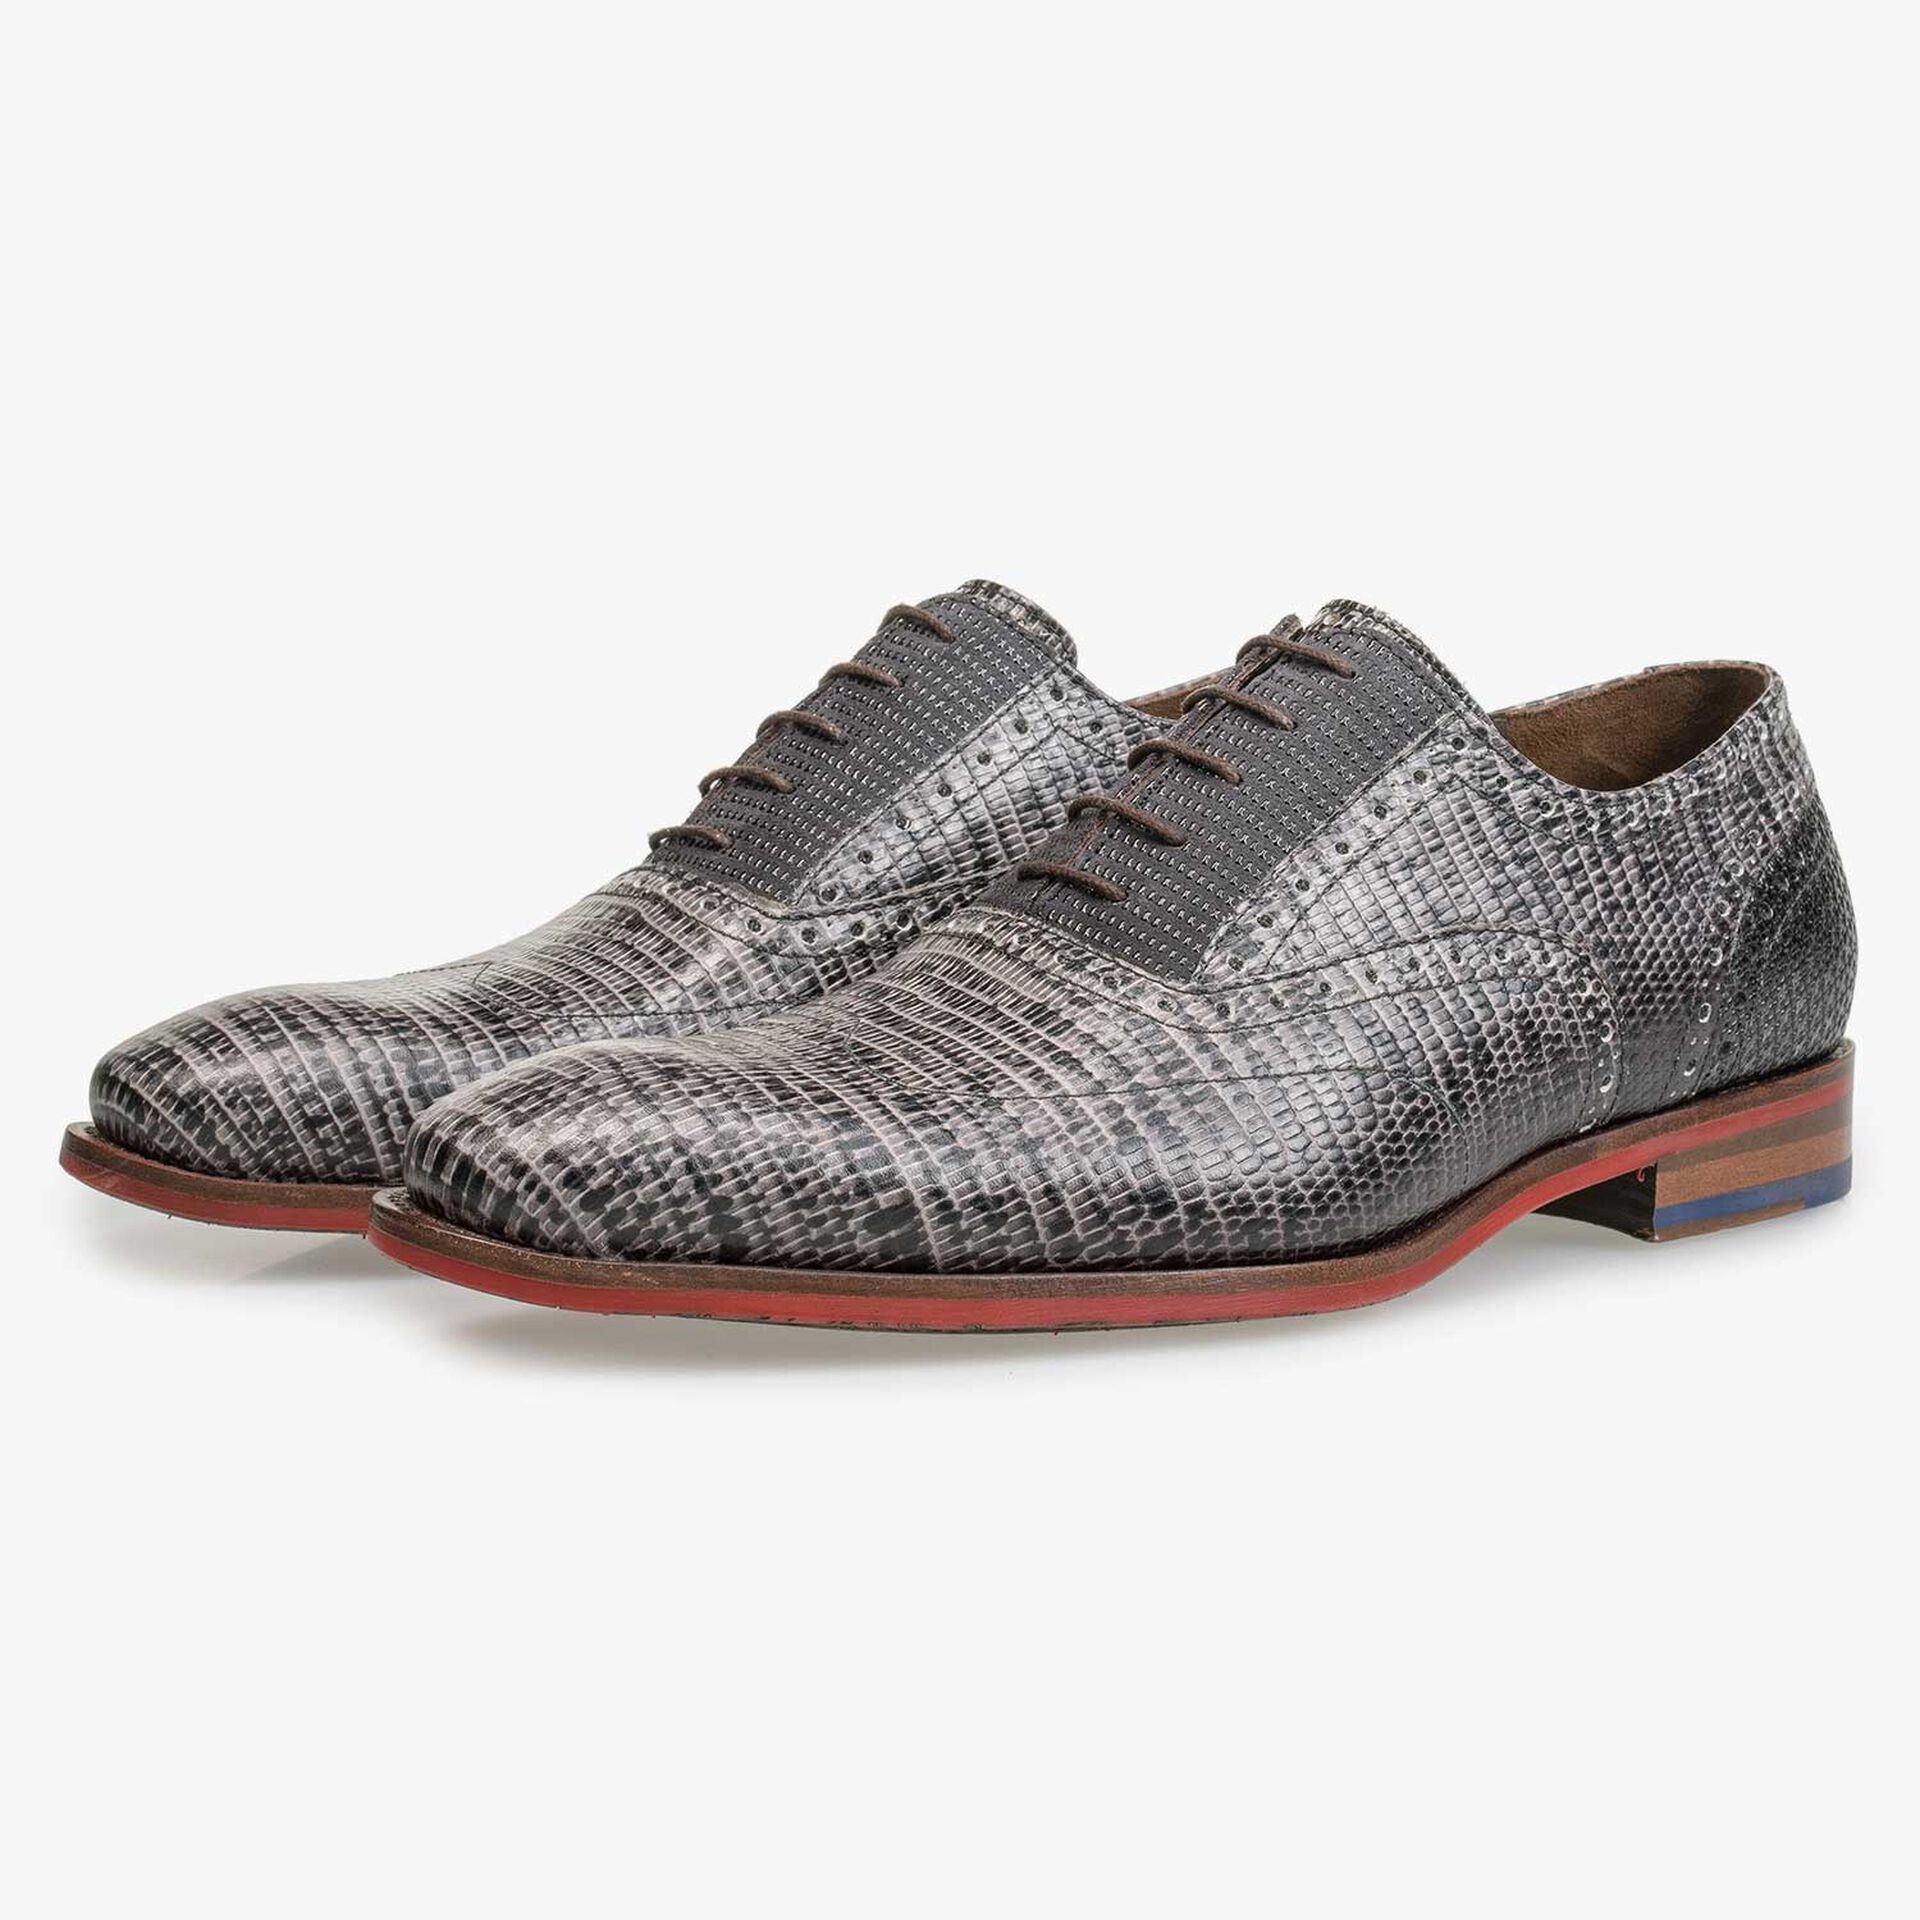 Grey lace shoe with lizard print